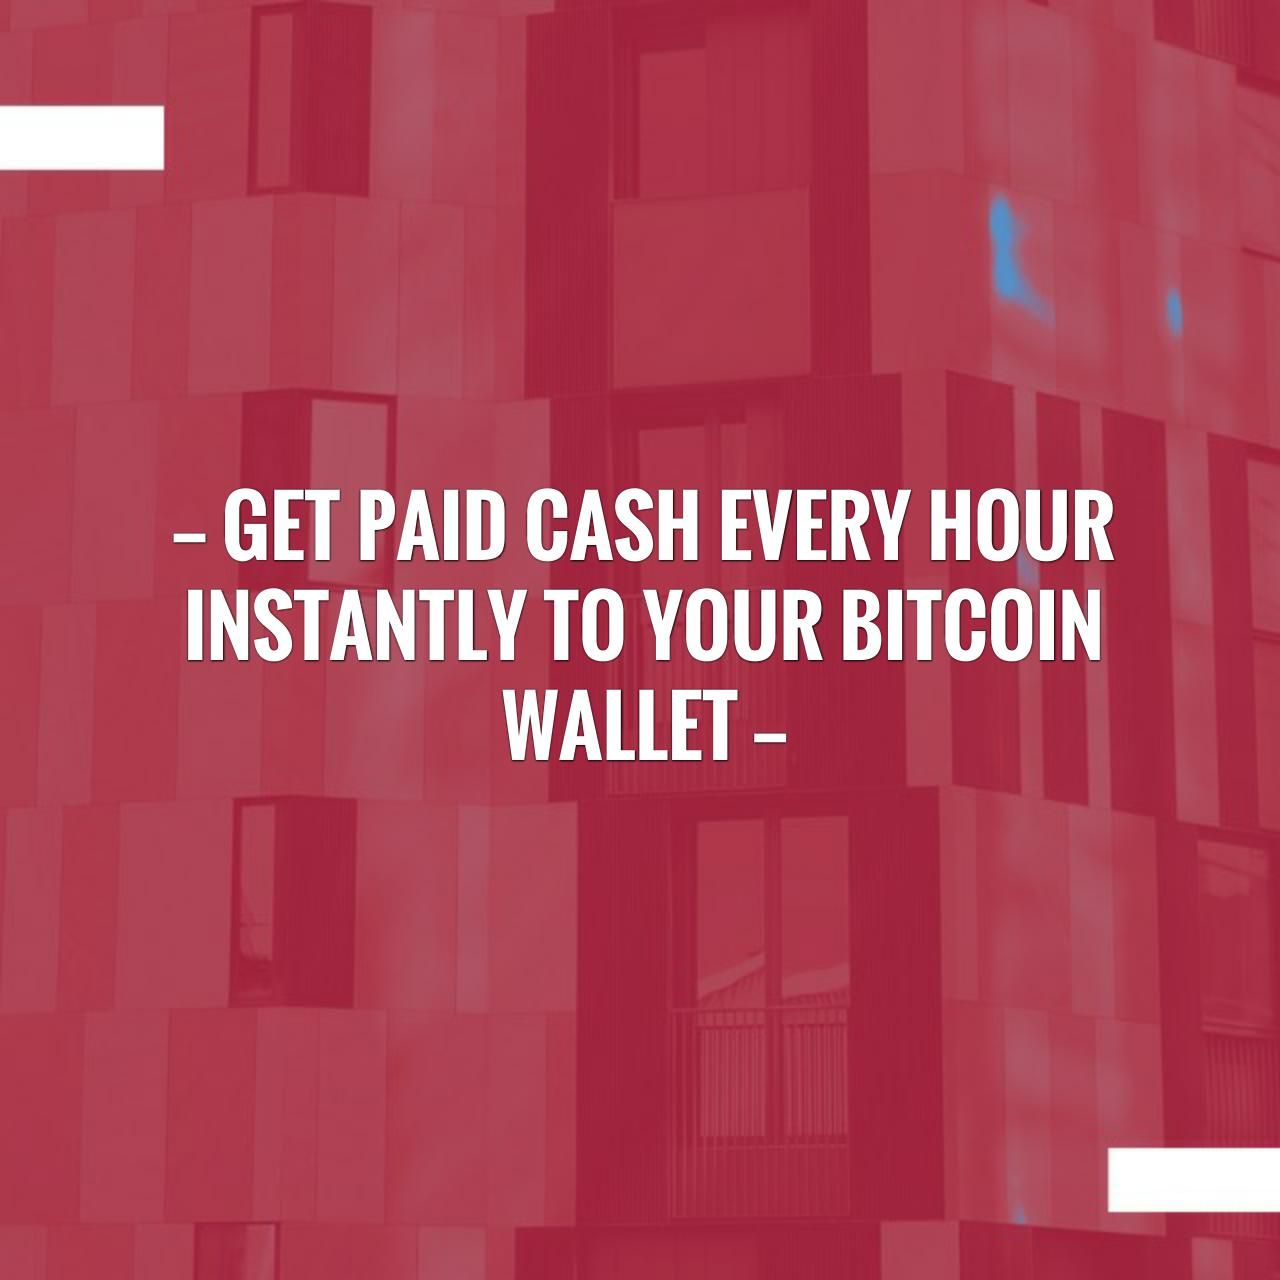 Get Paid Cash Every Hour Instantly To Your Bitcoin Wallet